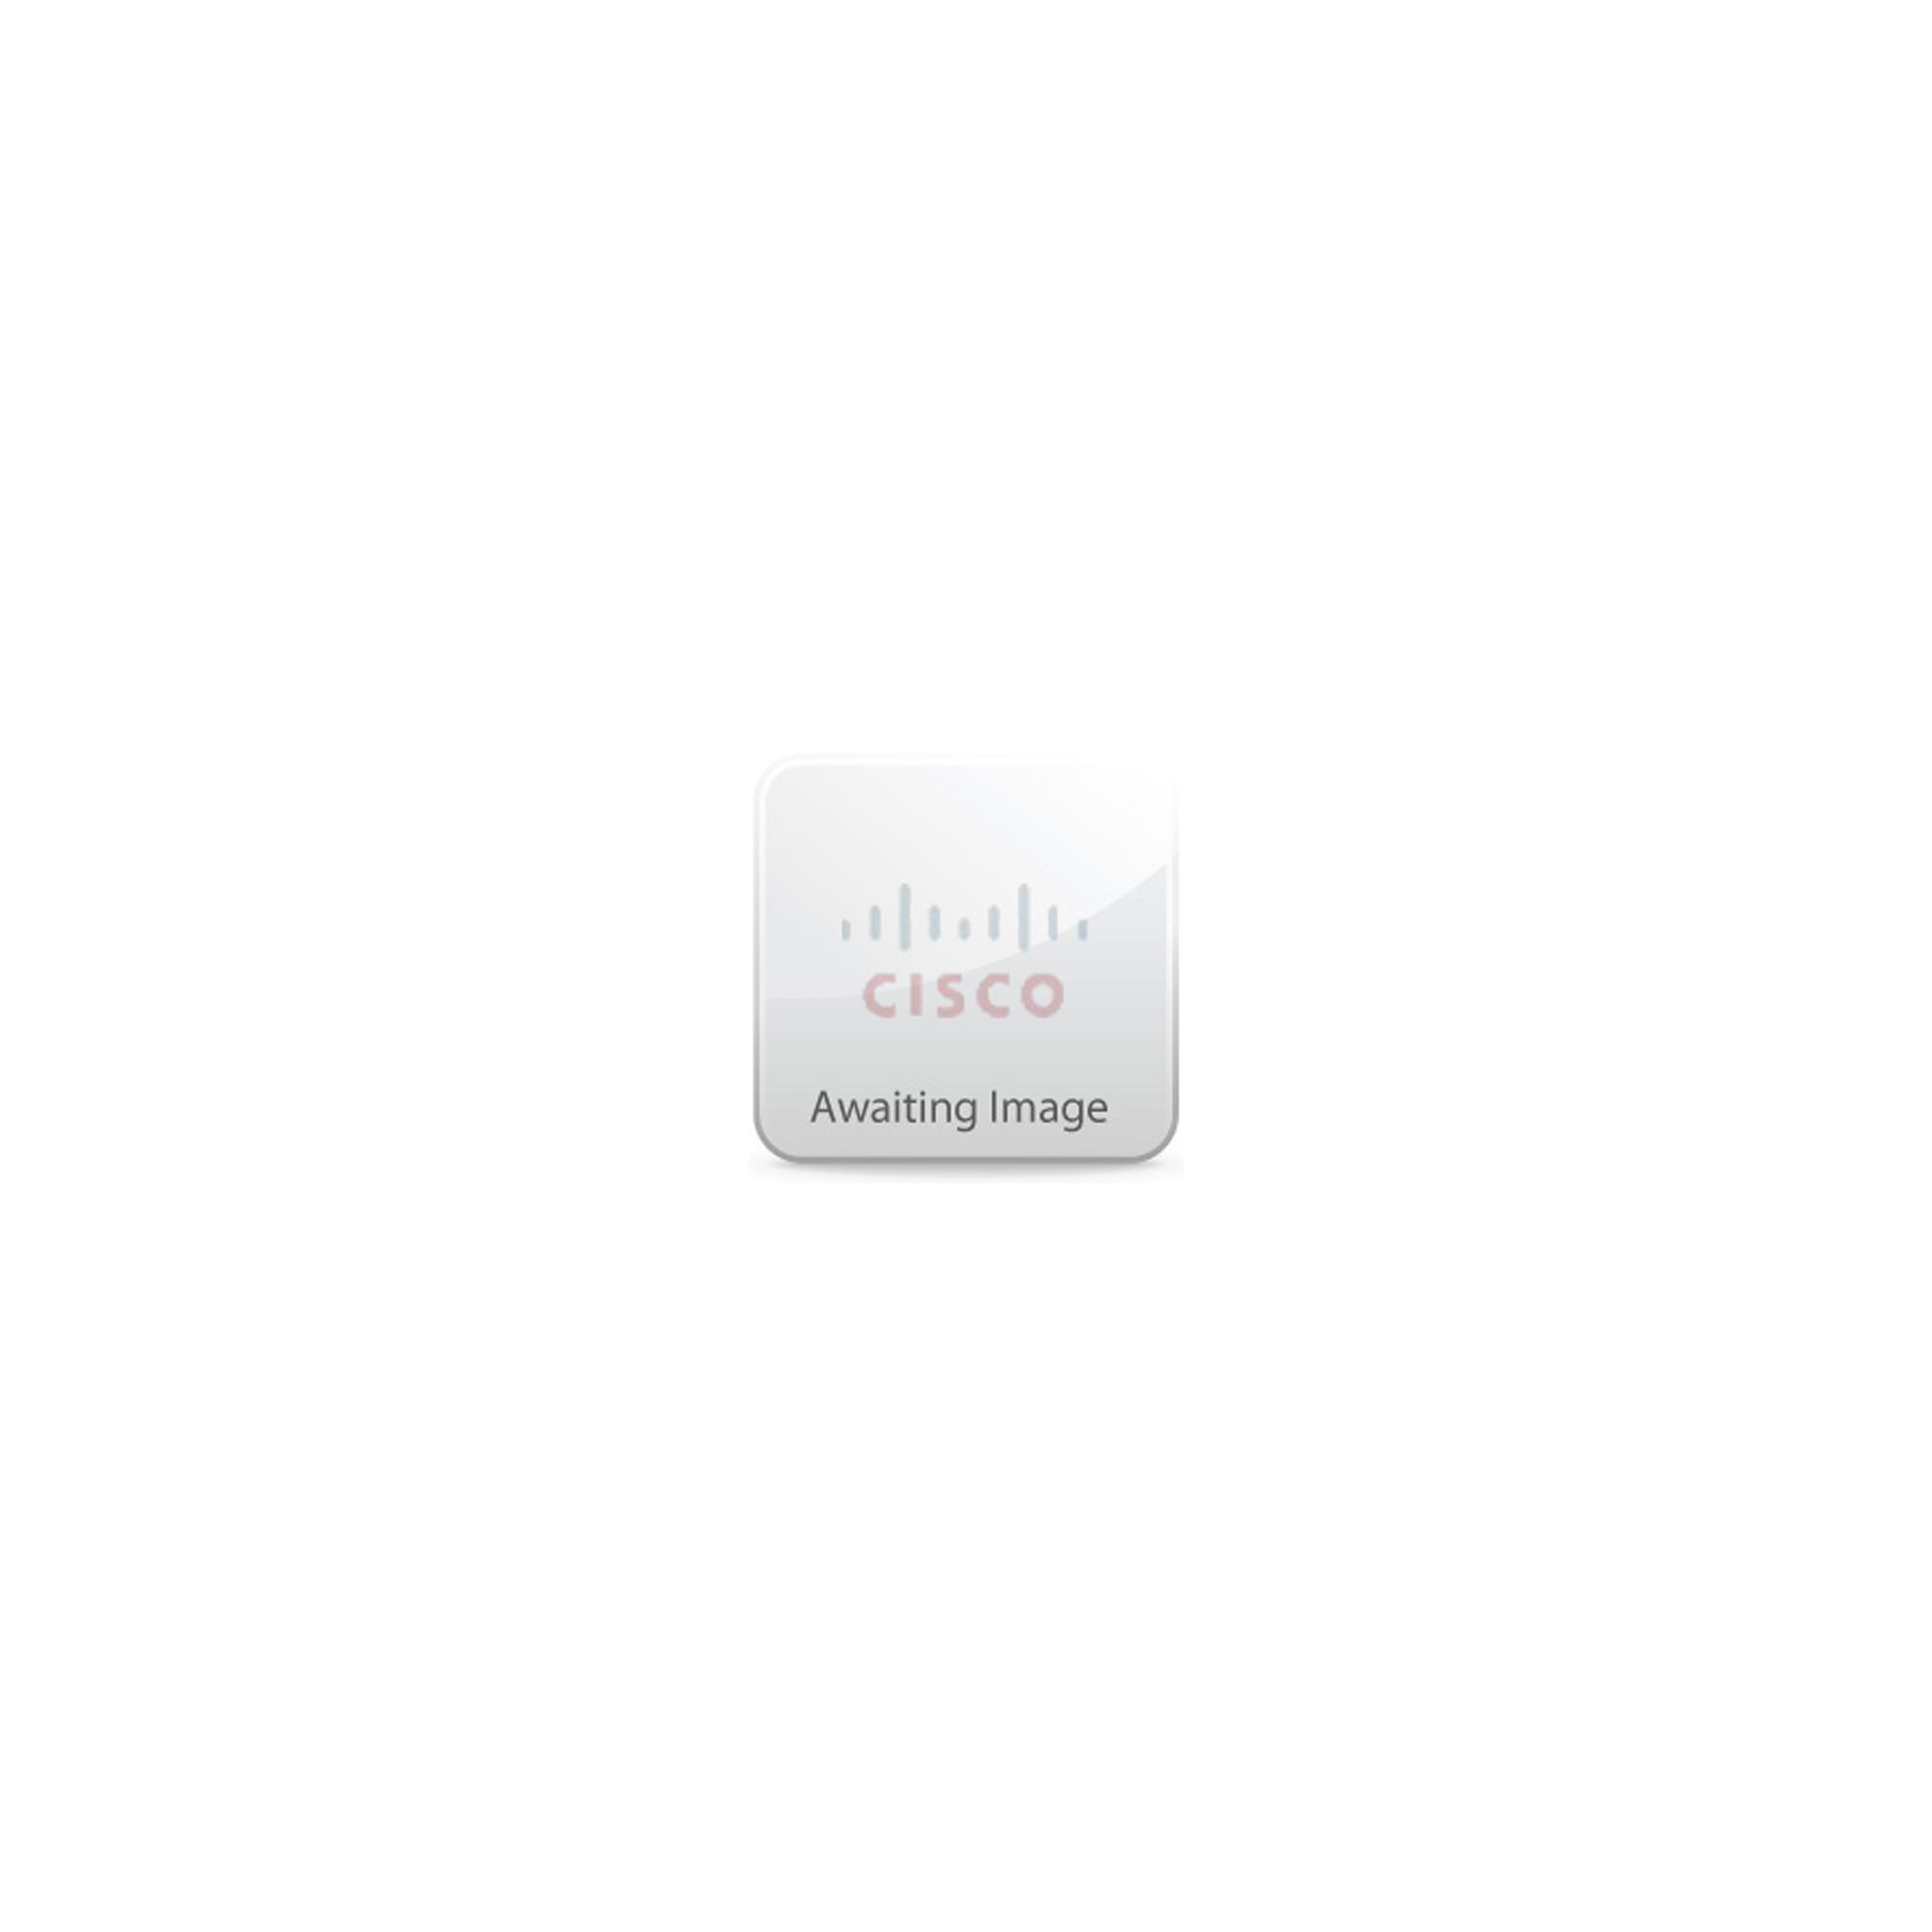 Cisco 1GB DRAM (1DIMM) for Cisco 2901 2911 2921 ISRSPARE at Tesco Direct